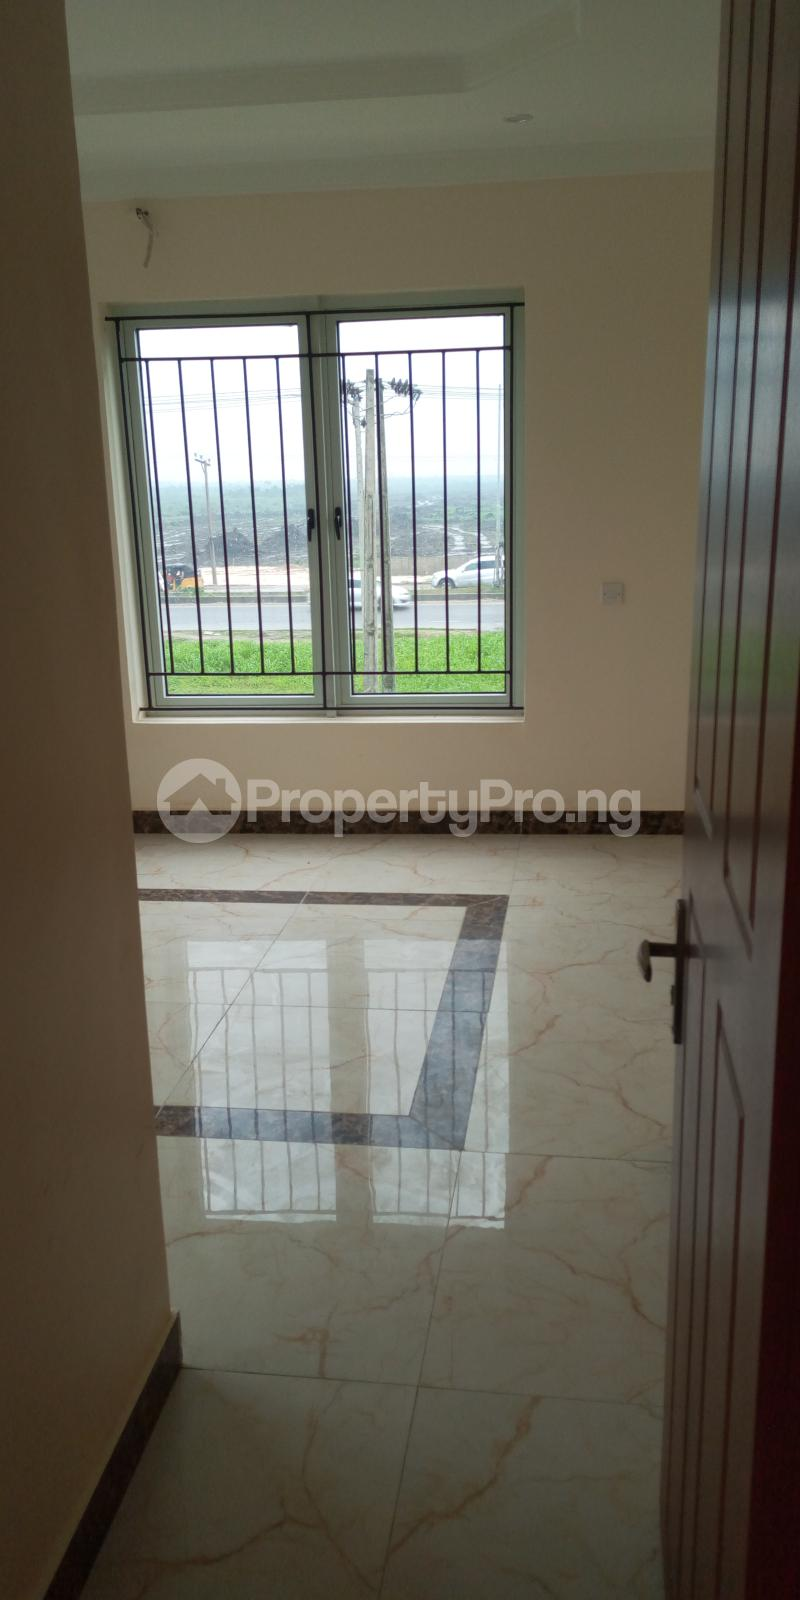 5 bedroom Detached Duplex House for rent Peace Gardens Estate Monastery road Sangotedo Lagos - 5